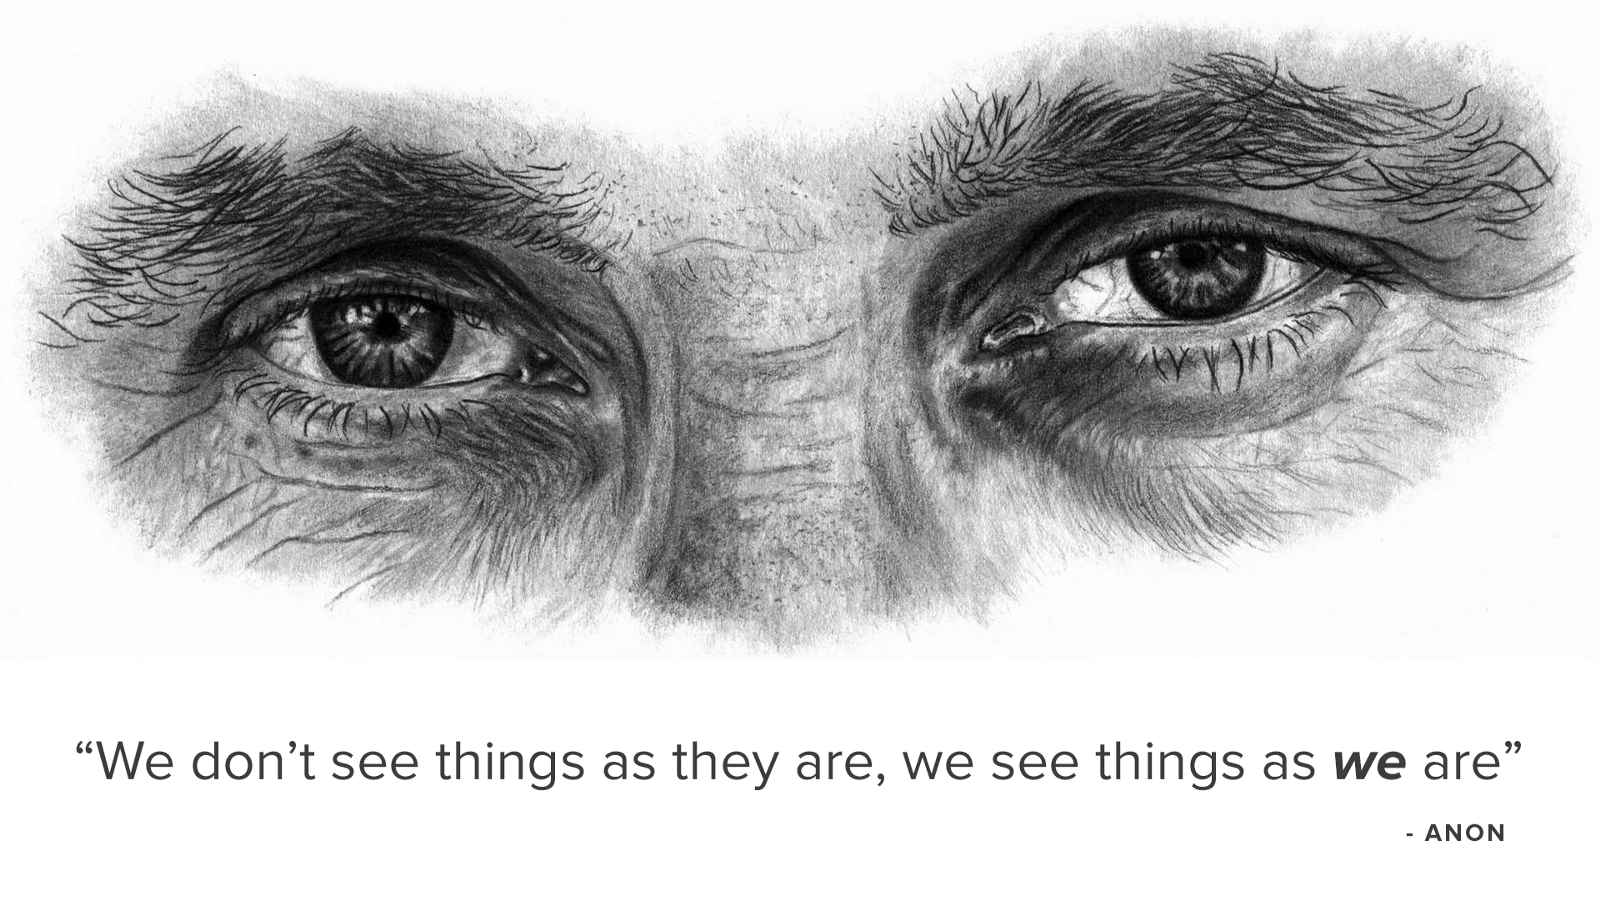 Image of eyes with text: We Don't see thongs as they are, we see things as we are